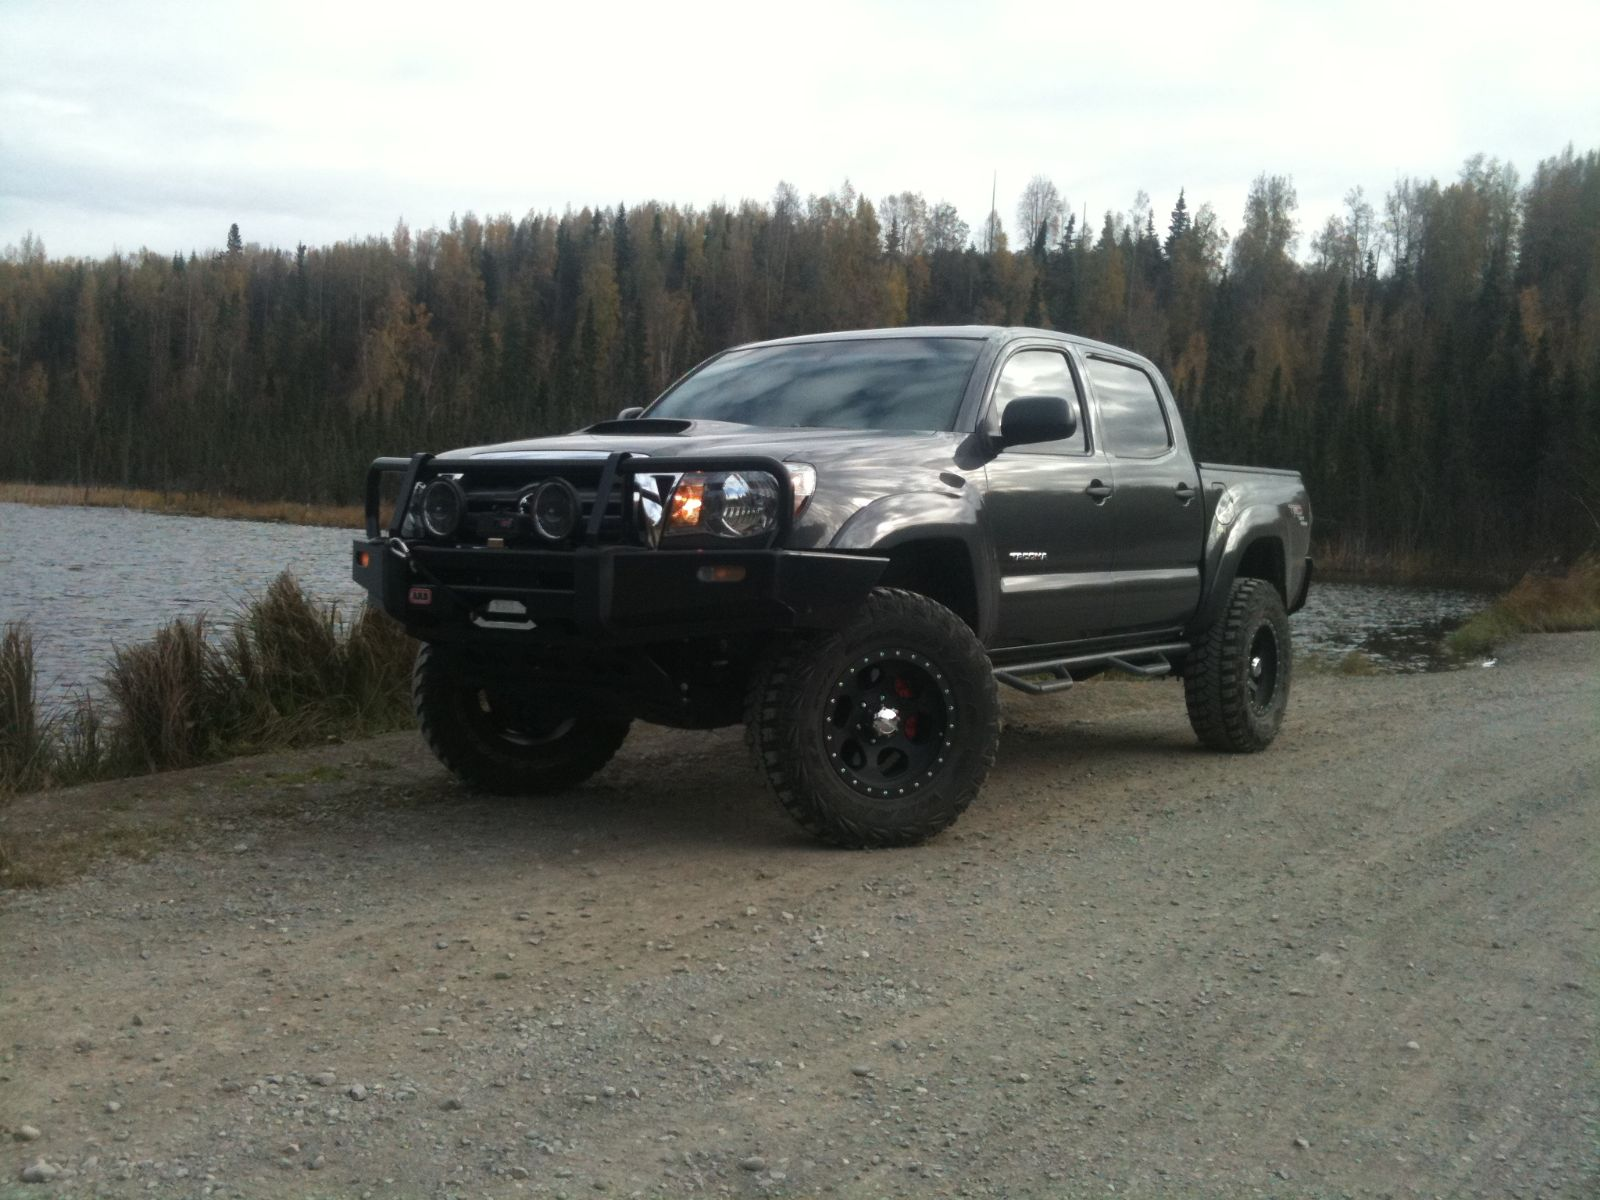 tacoma on pinterest toyota tacoma lifted tacoma and toyota tacoma. Black Bedroom Furniture Sets. Home Design Ideas